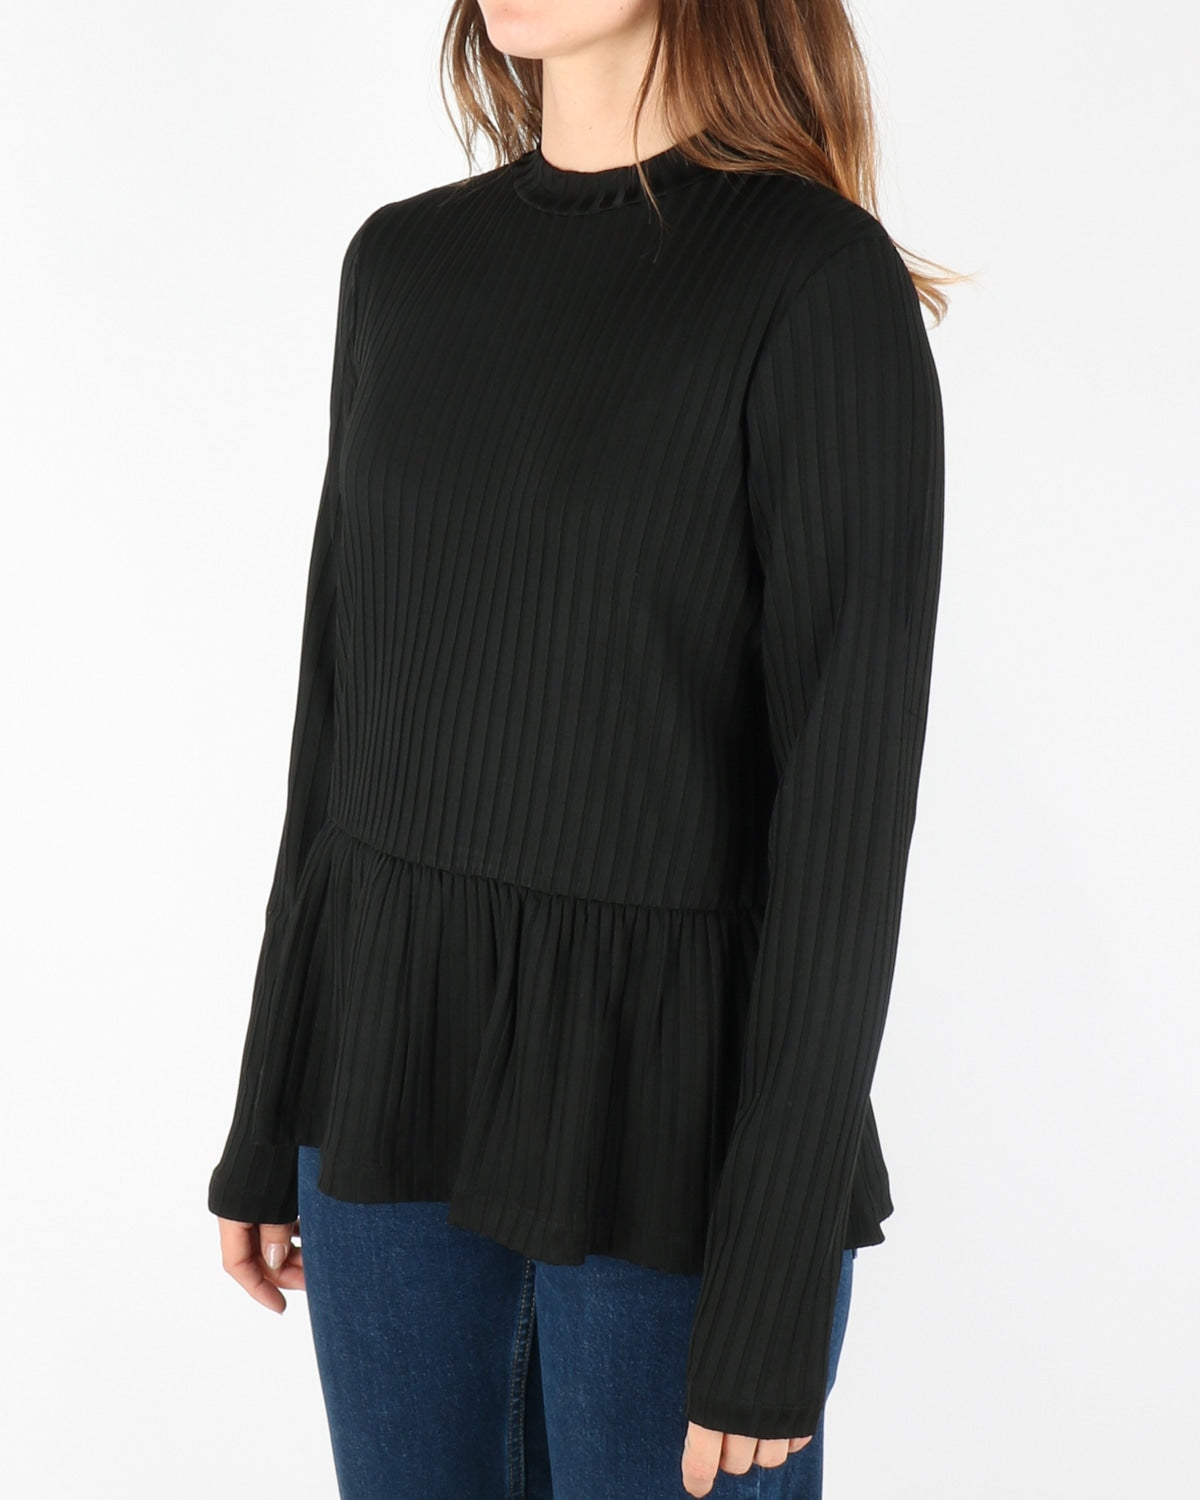 libertine libertine_focus blouse_black_1_3